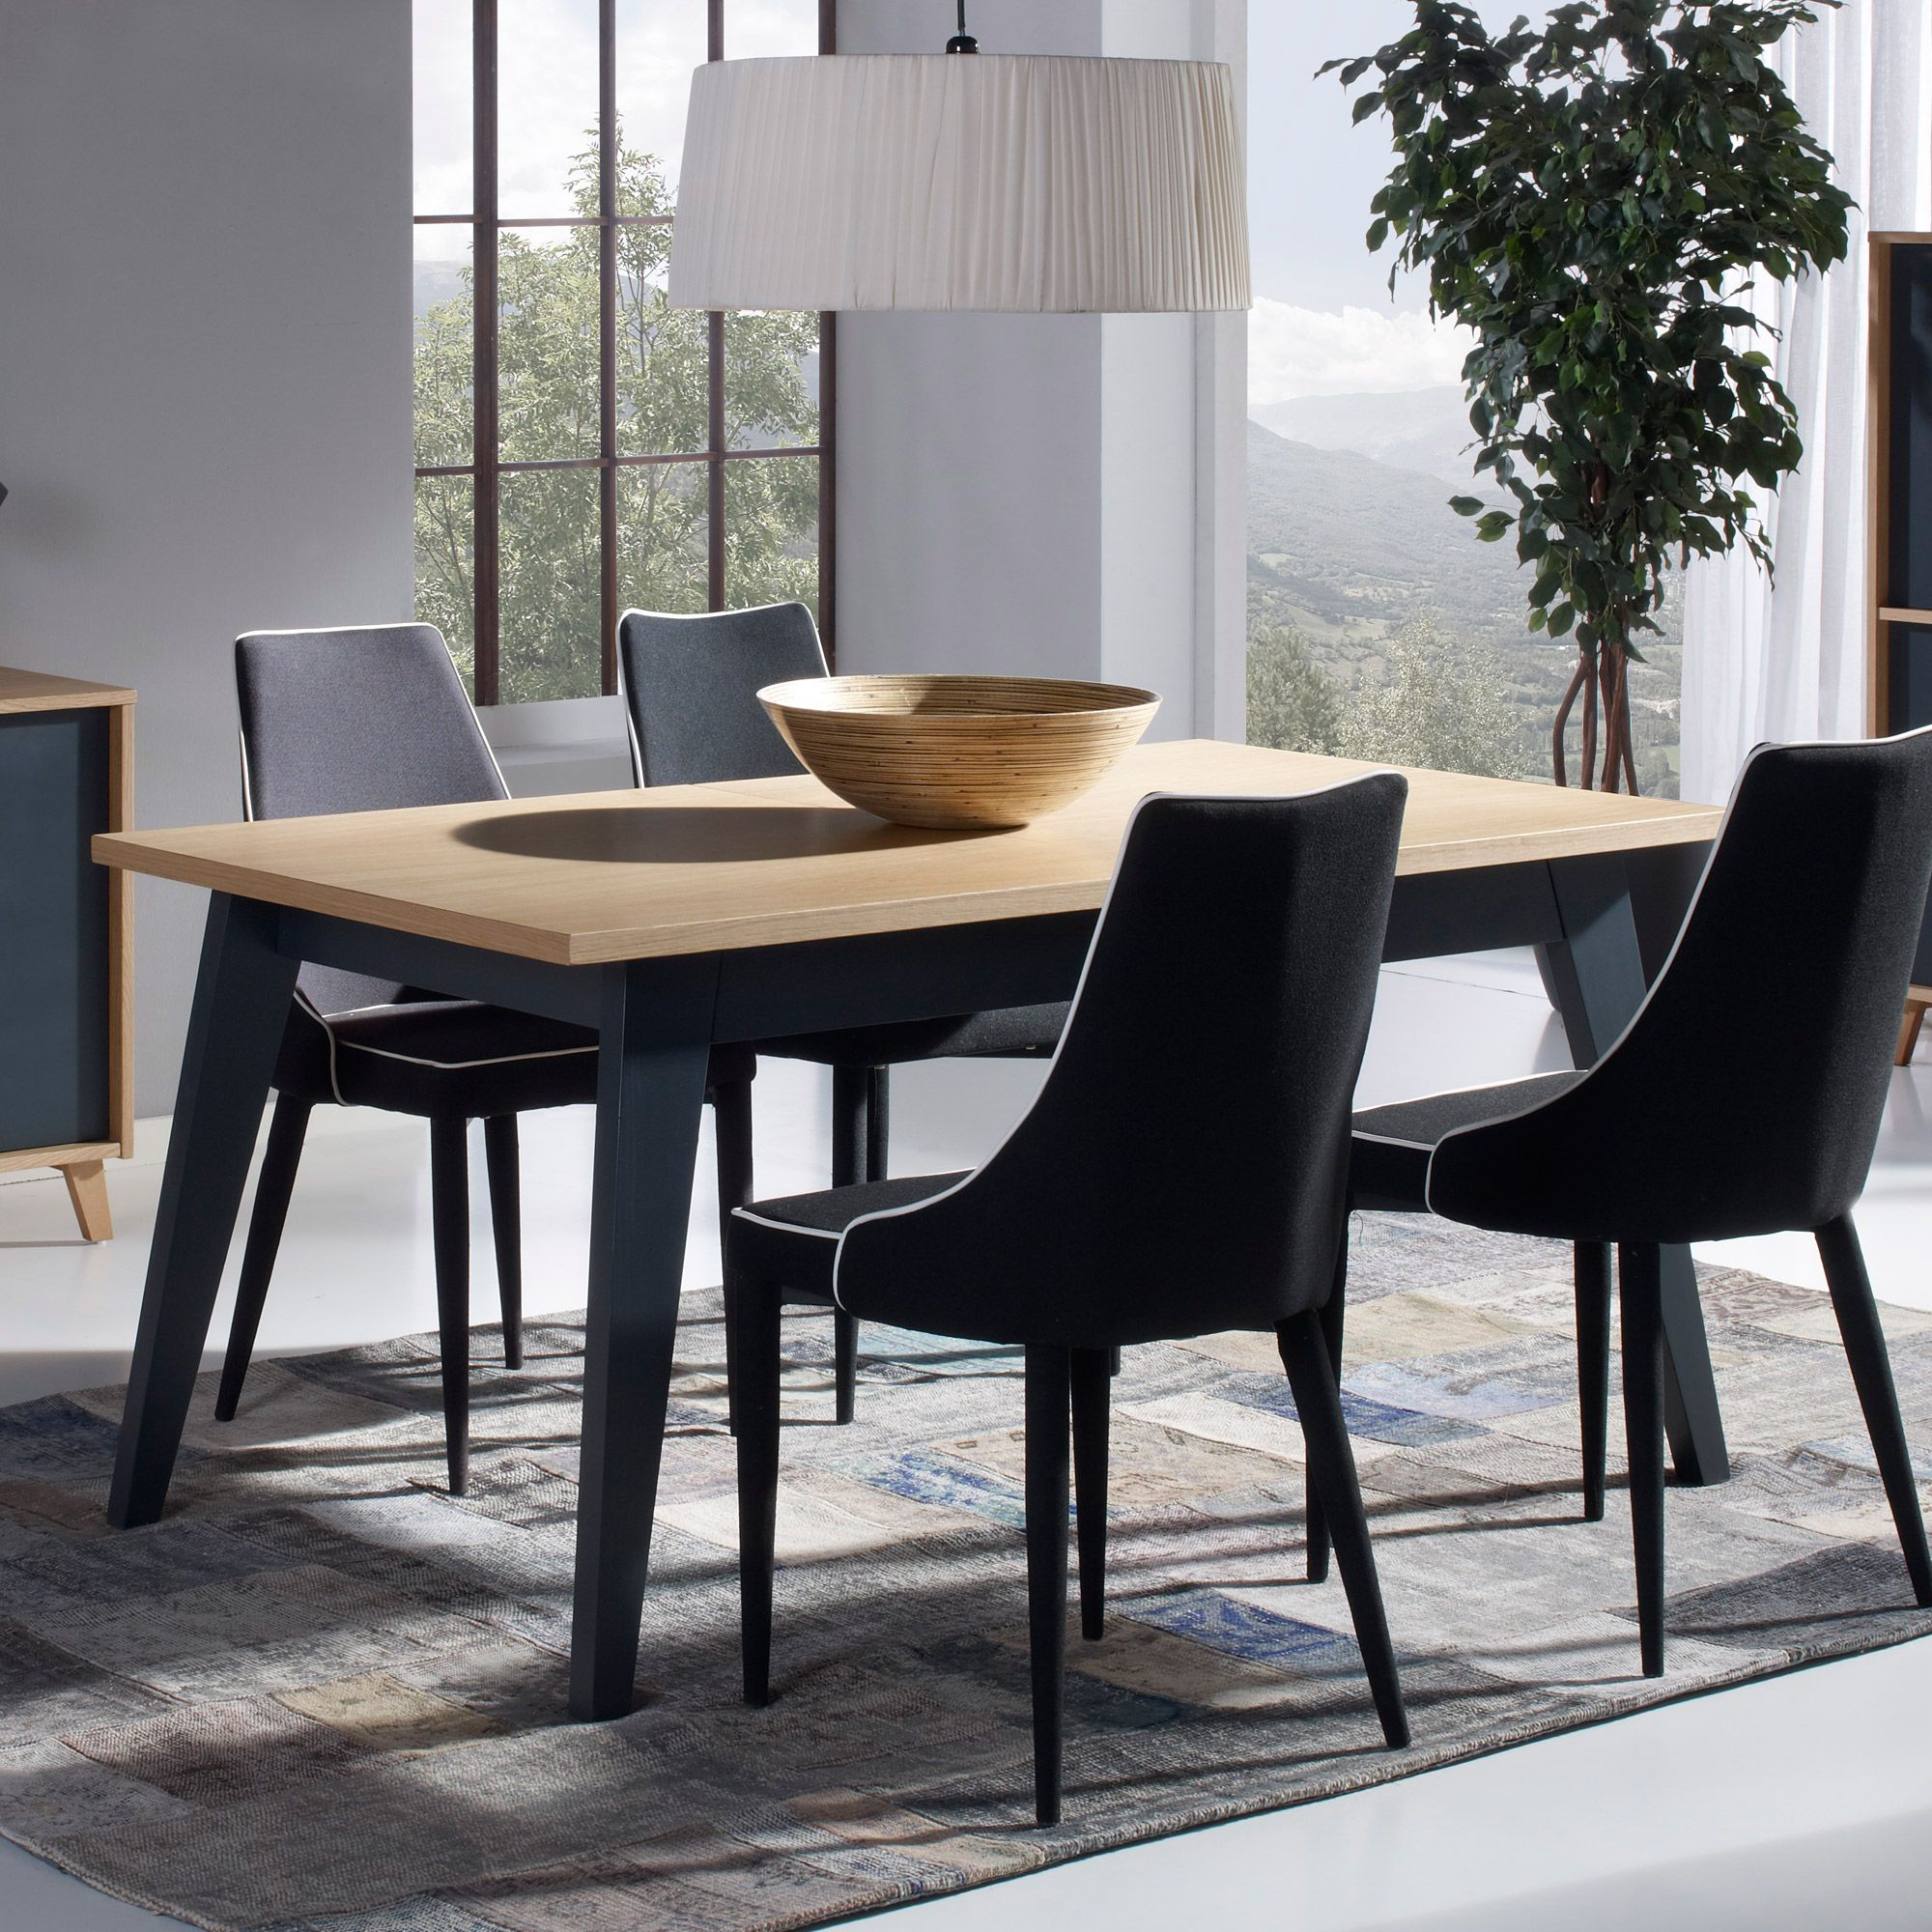 Pin By Delamaison On Salle A Manger Scandinavian Dining